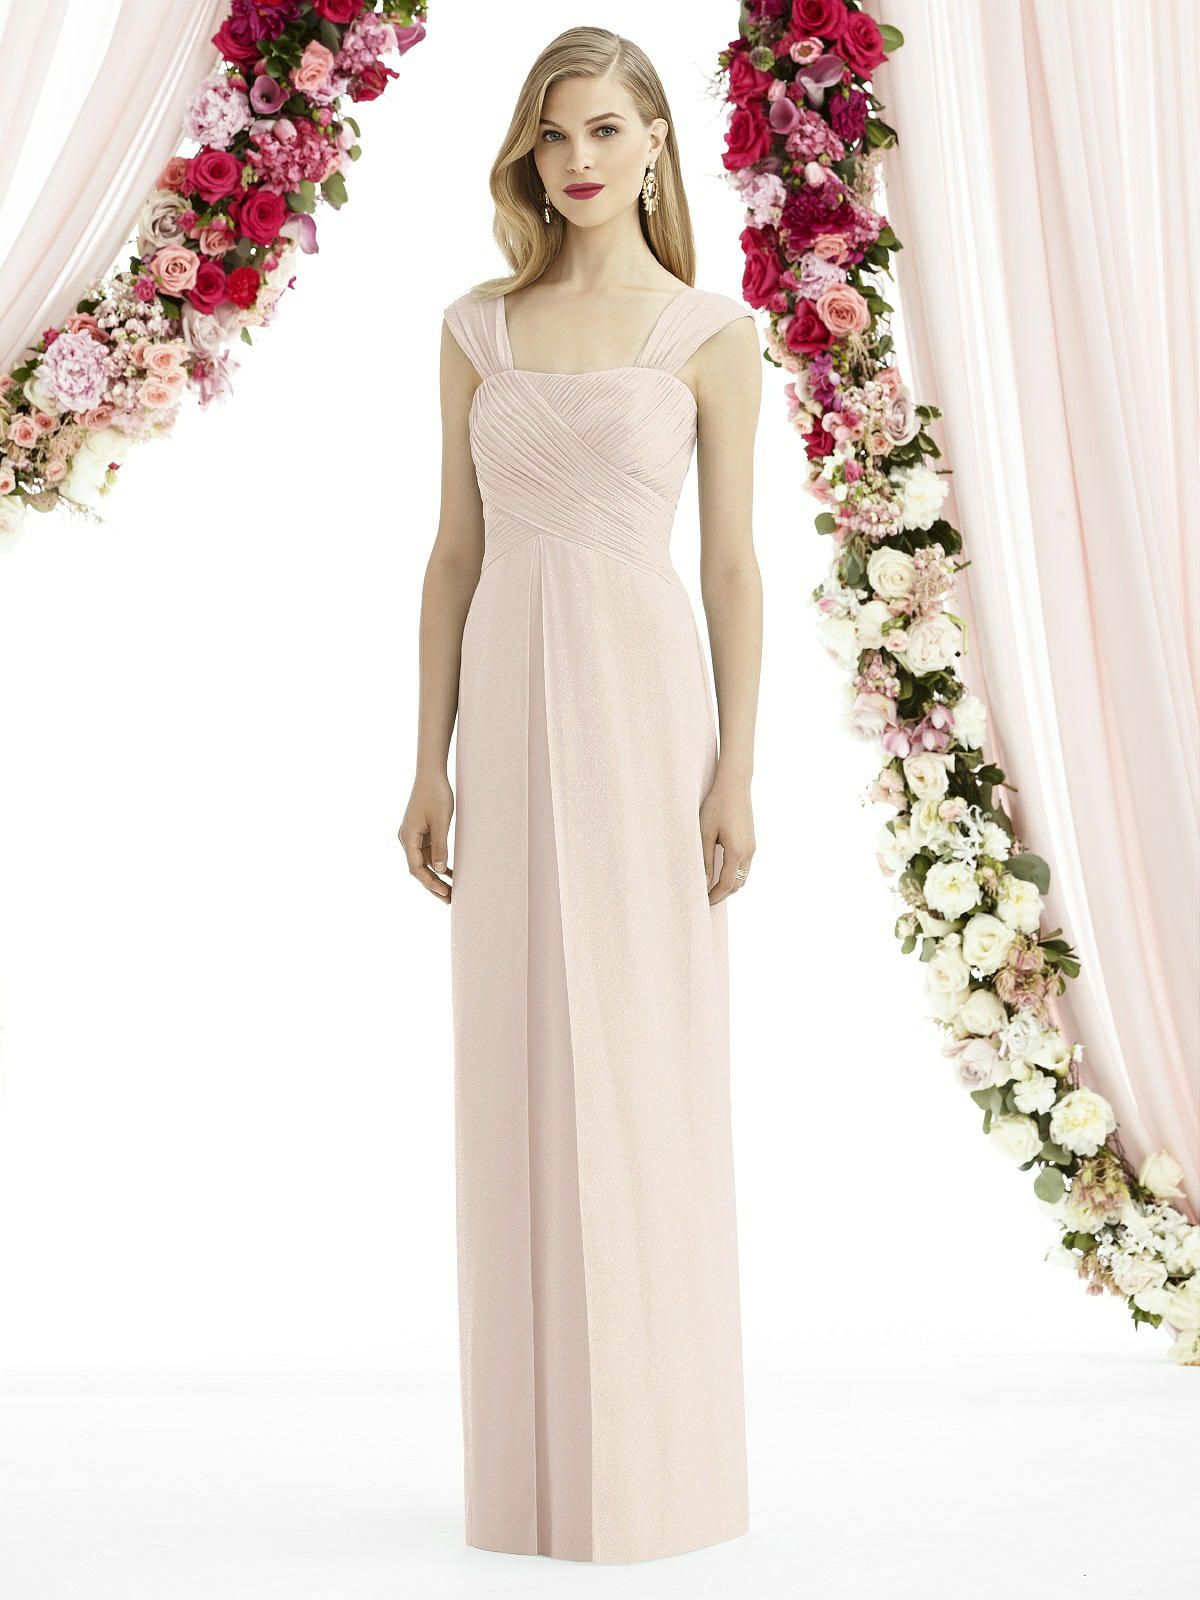 Dessy collection bridesmaids style 6735 httpdessy dessy collection bridesmaids style 6735 httpdessydresses ombrellifo Choice Image